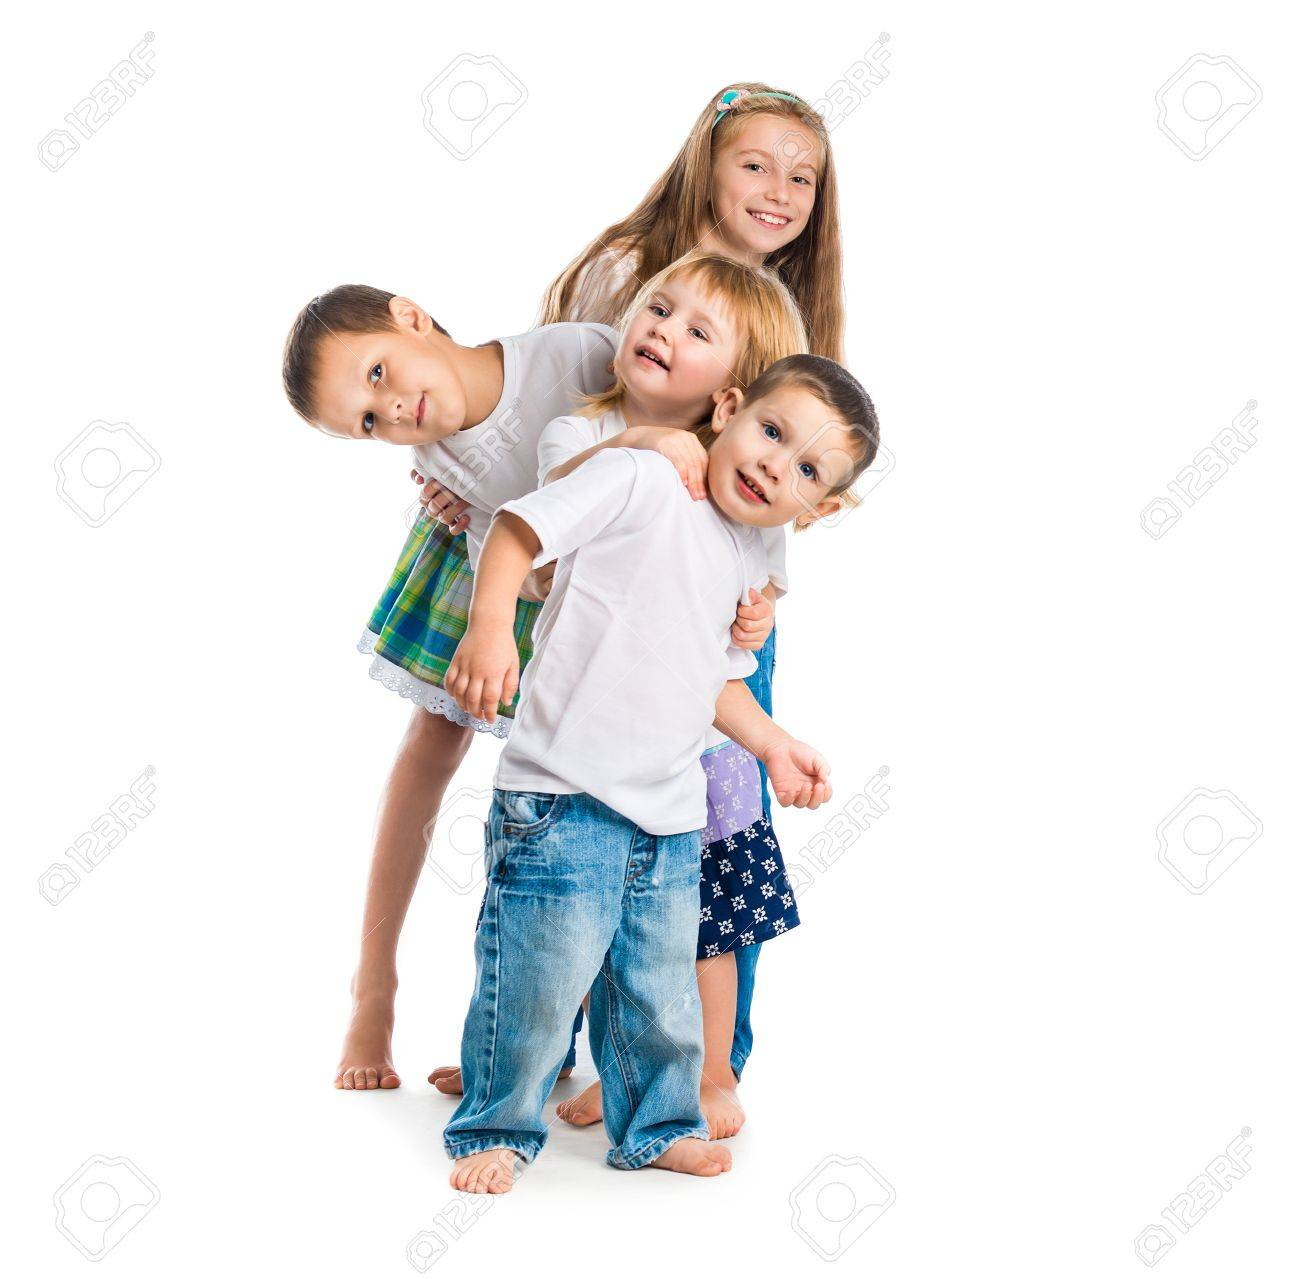 smiling children with arms up isolated on white background - 45297114